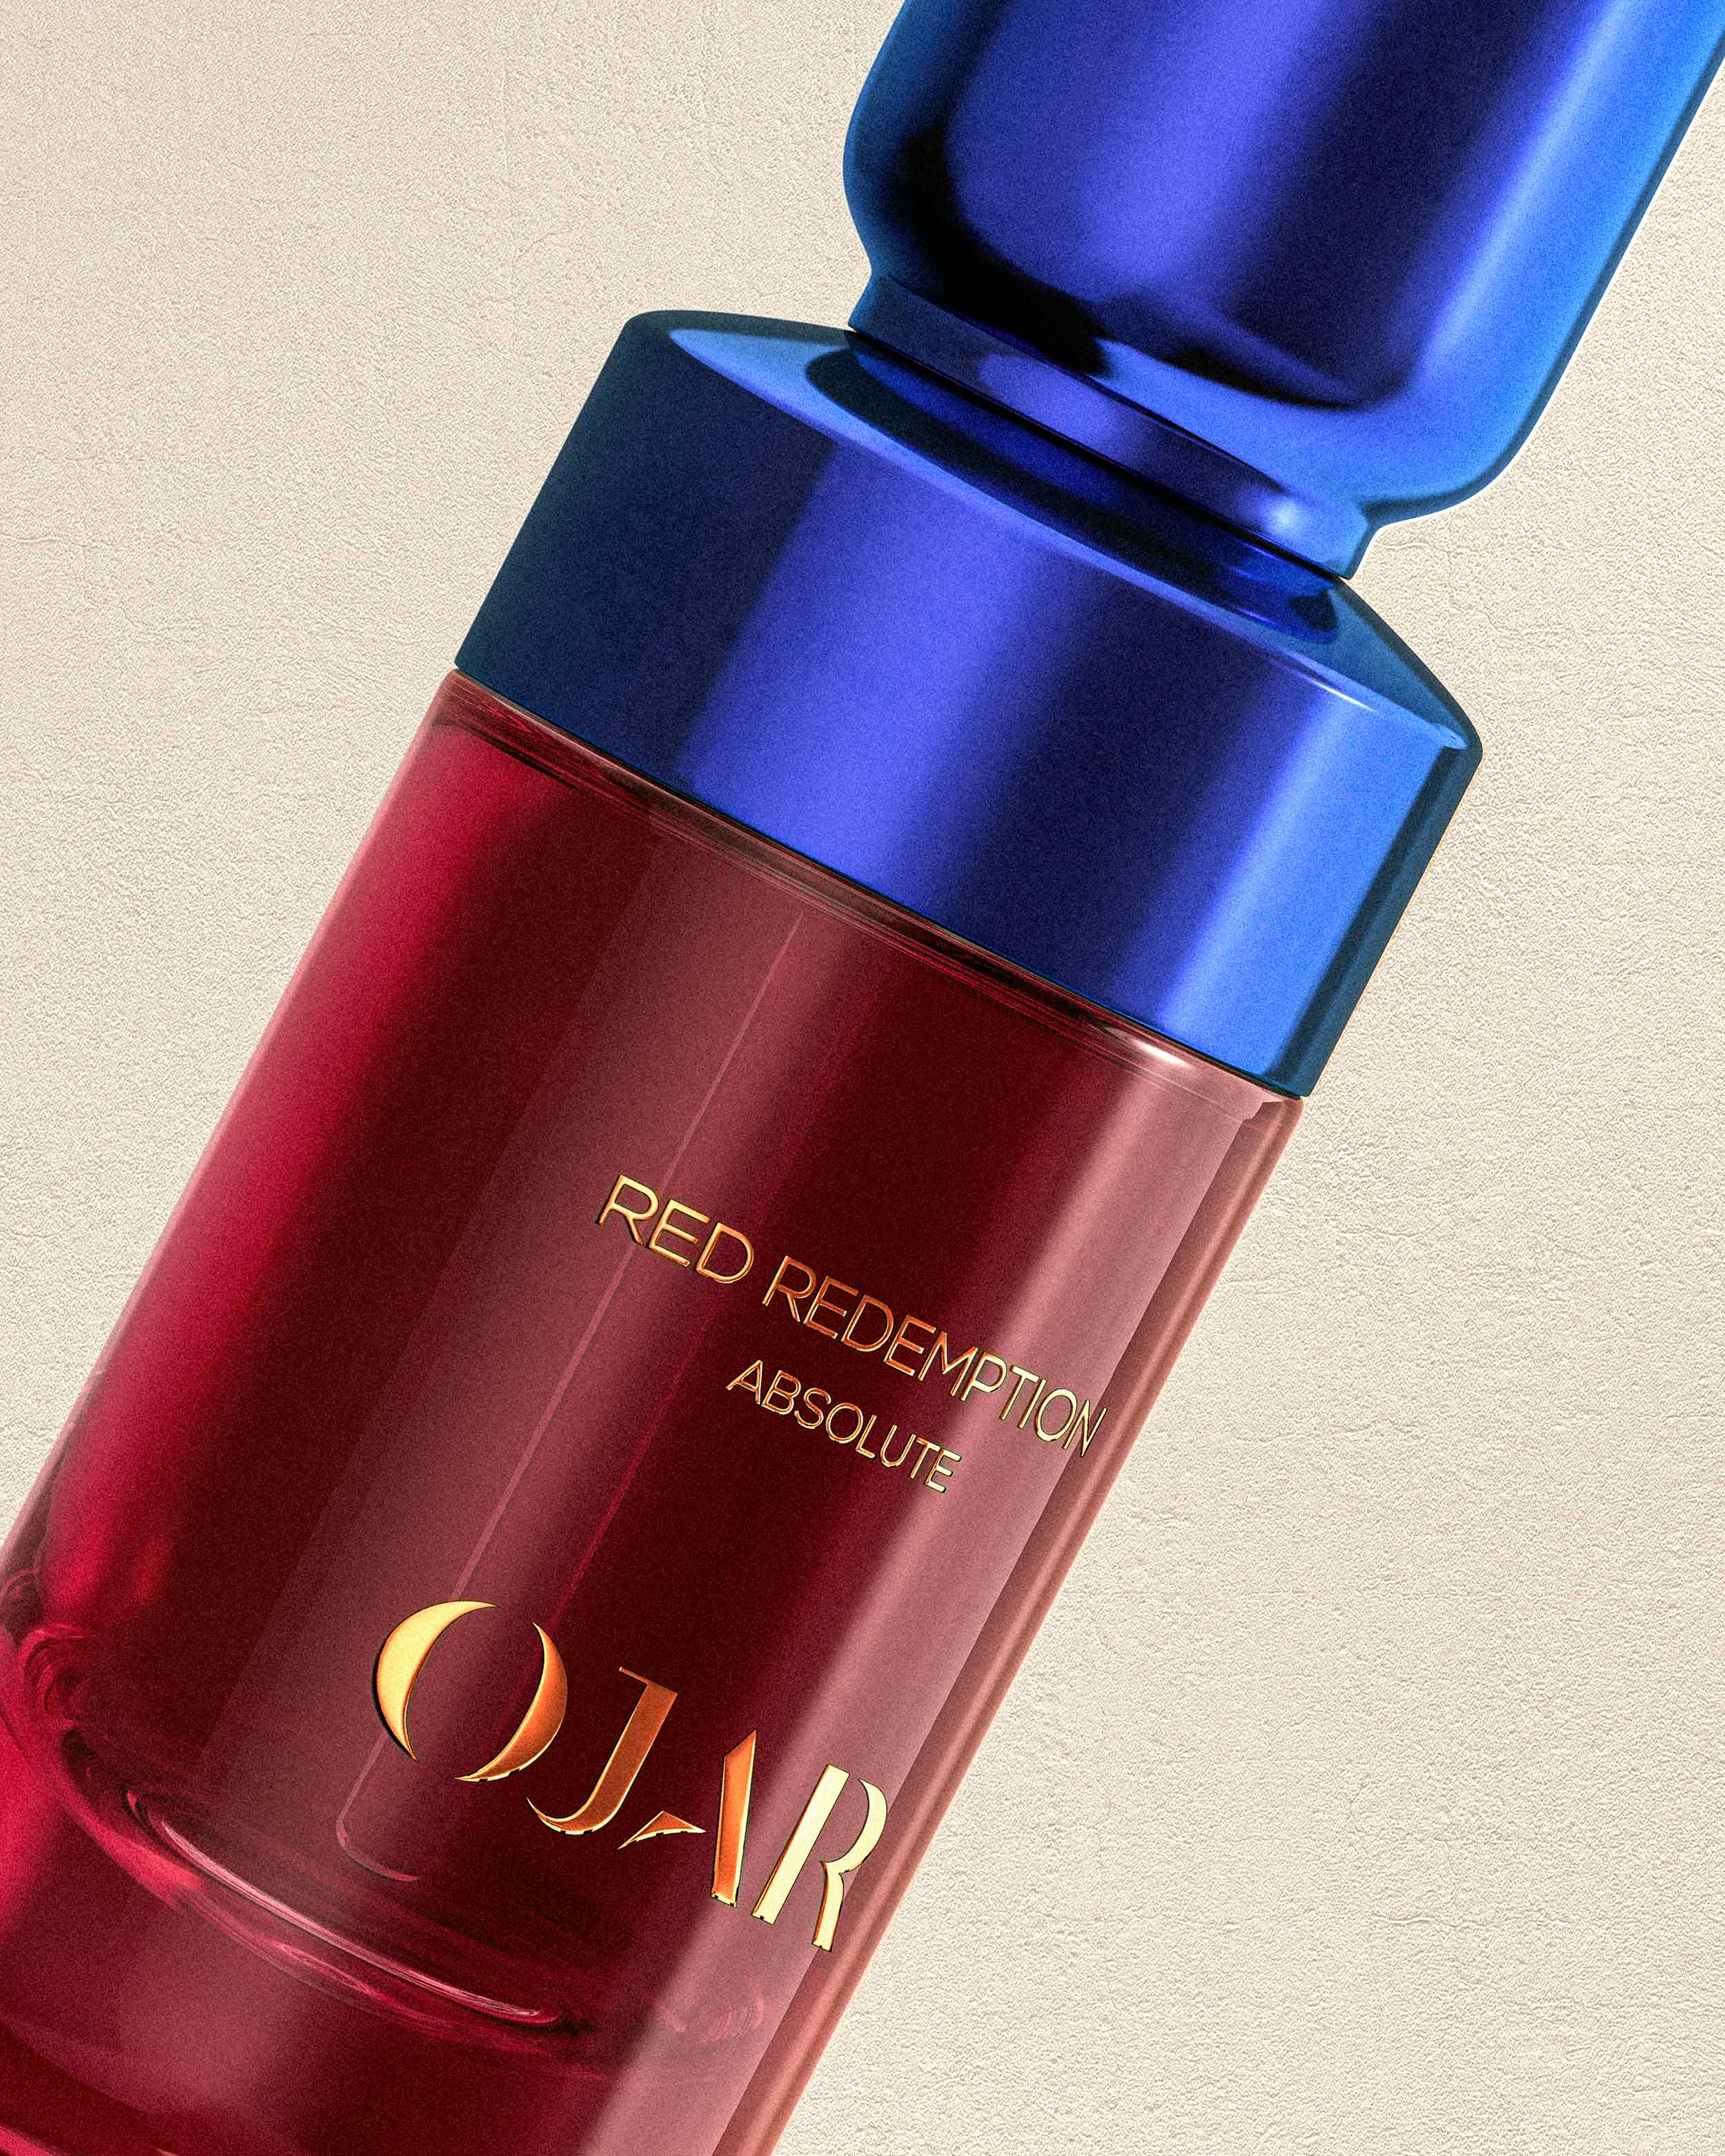 OJAR Absolute Red Redemption Perfume Close Up